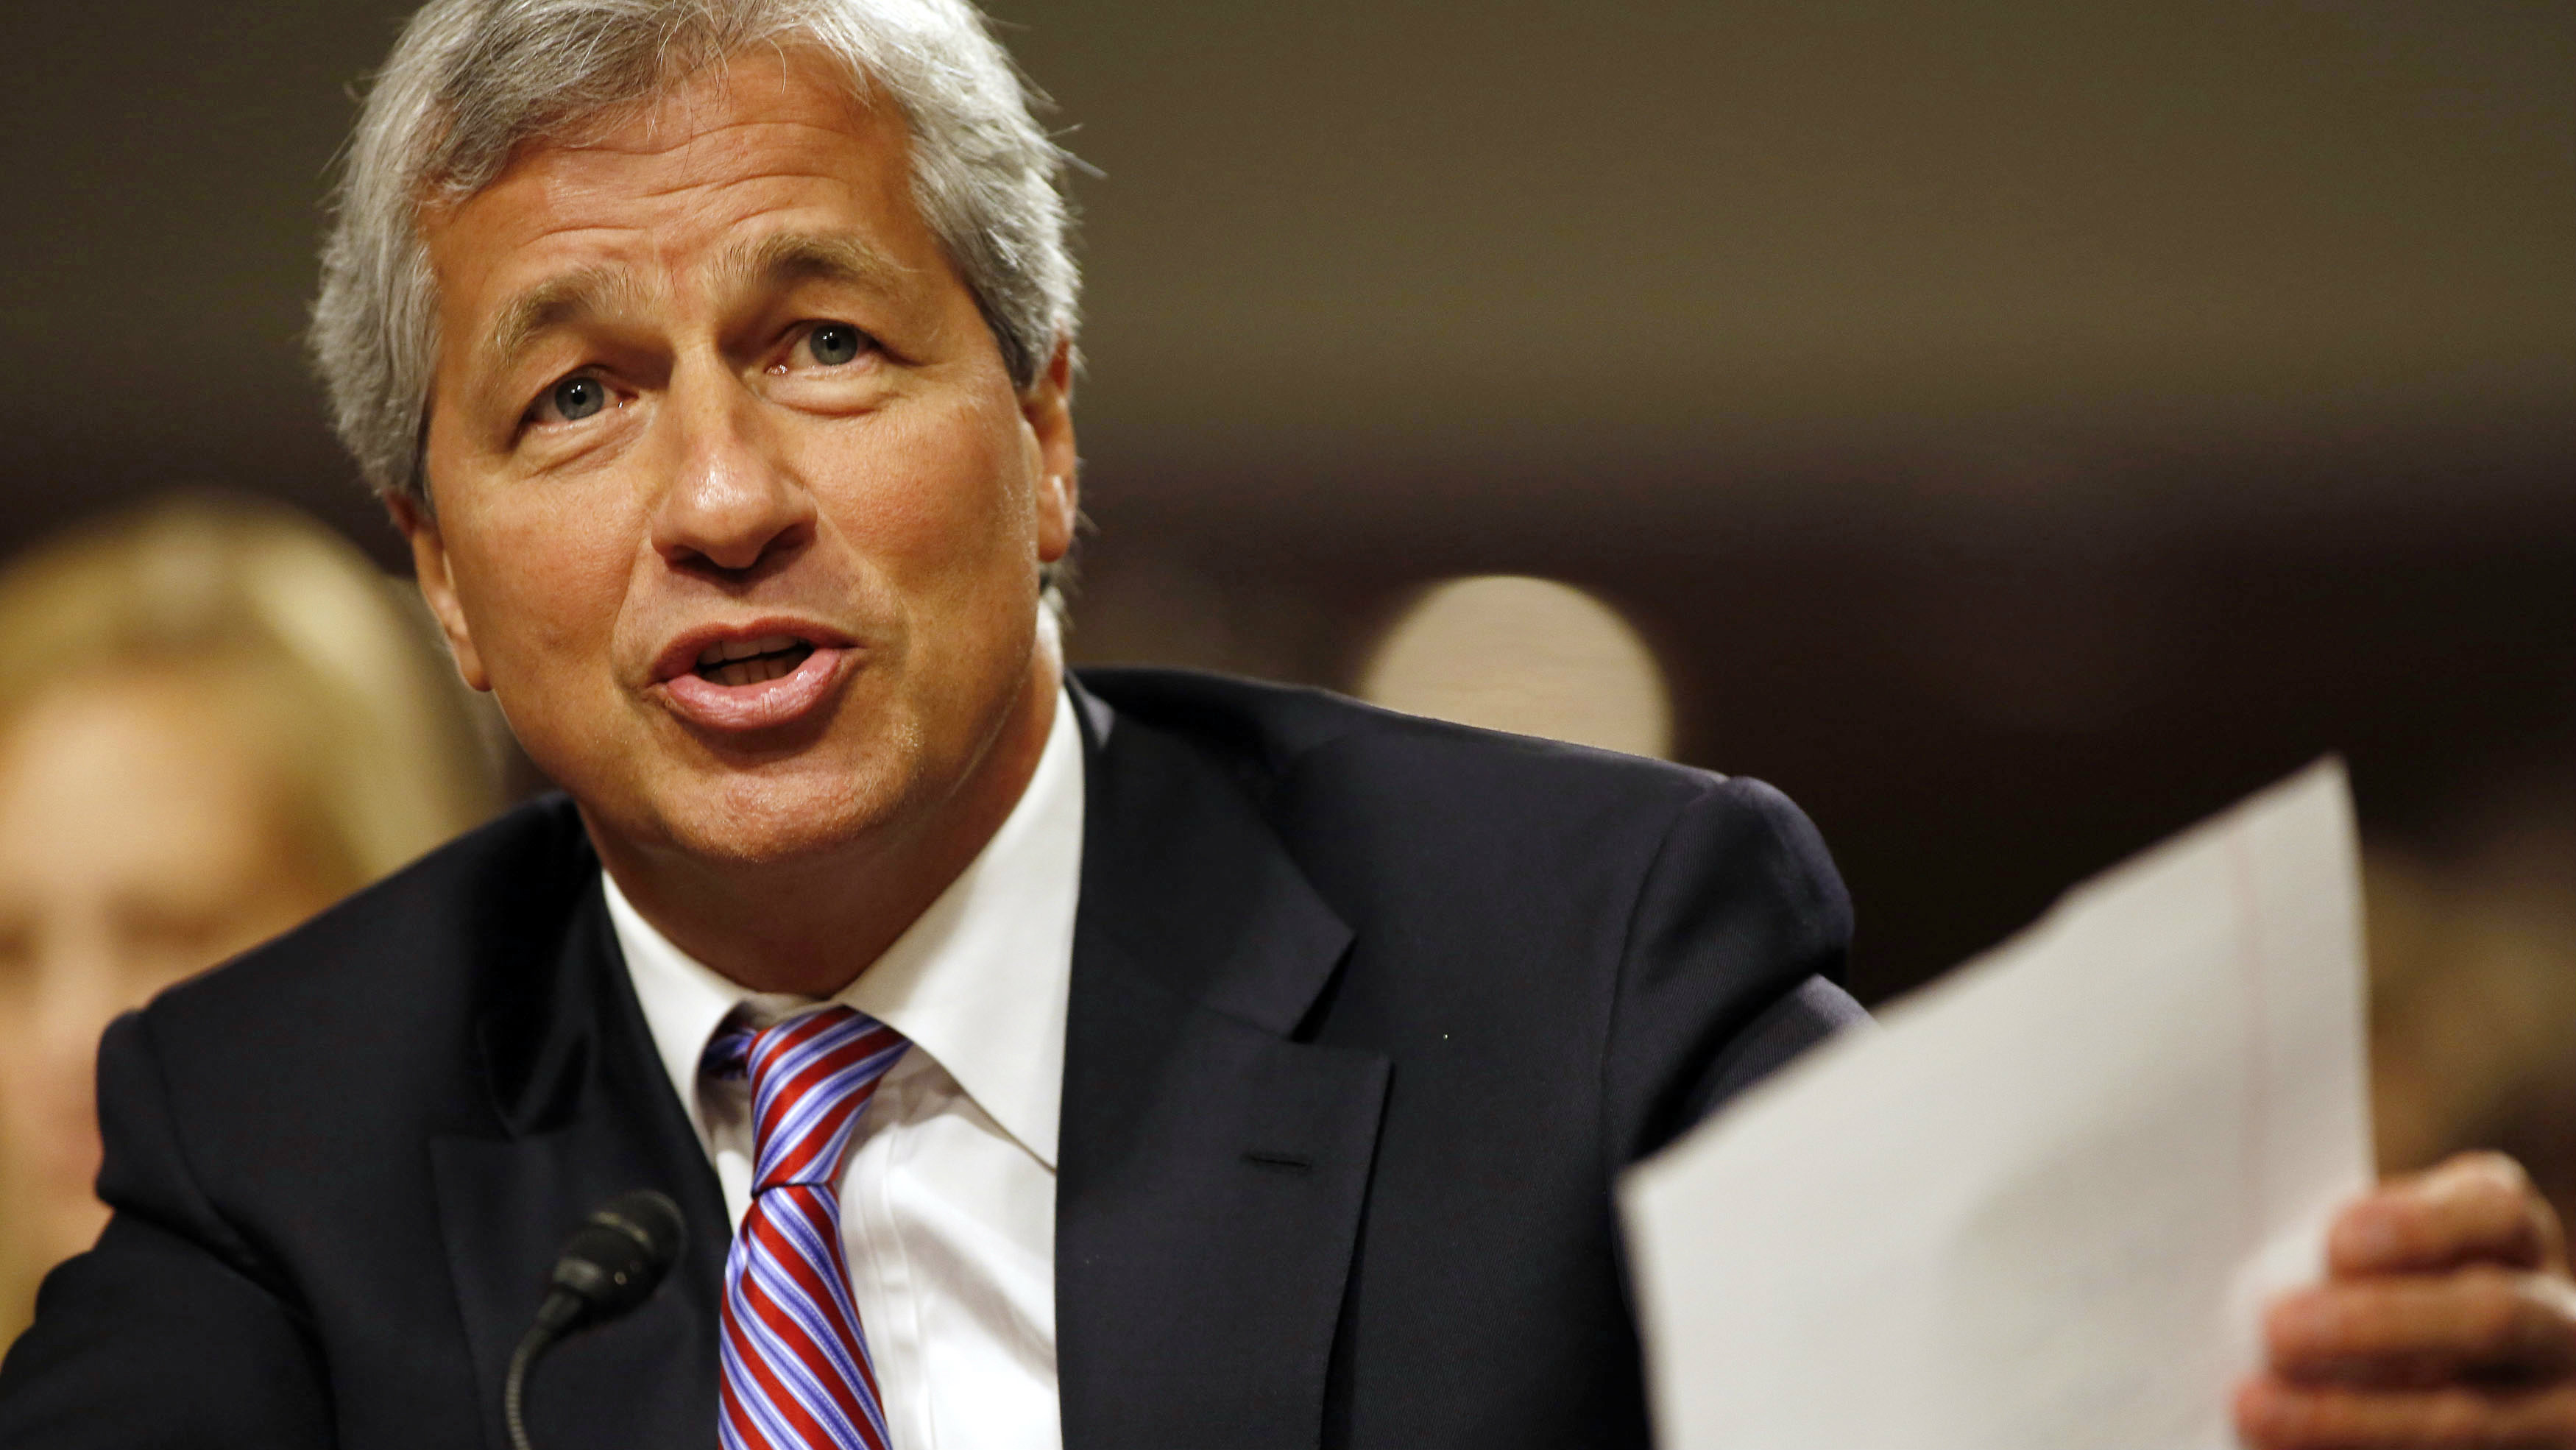 JP Morgan Chase and Company CEO Jamie Dimon answers a question at the U.S. Senate Banking, Housing and Urban Affairs Committee hearing on Capitol Hill in Washington DC, June 13, 2012.